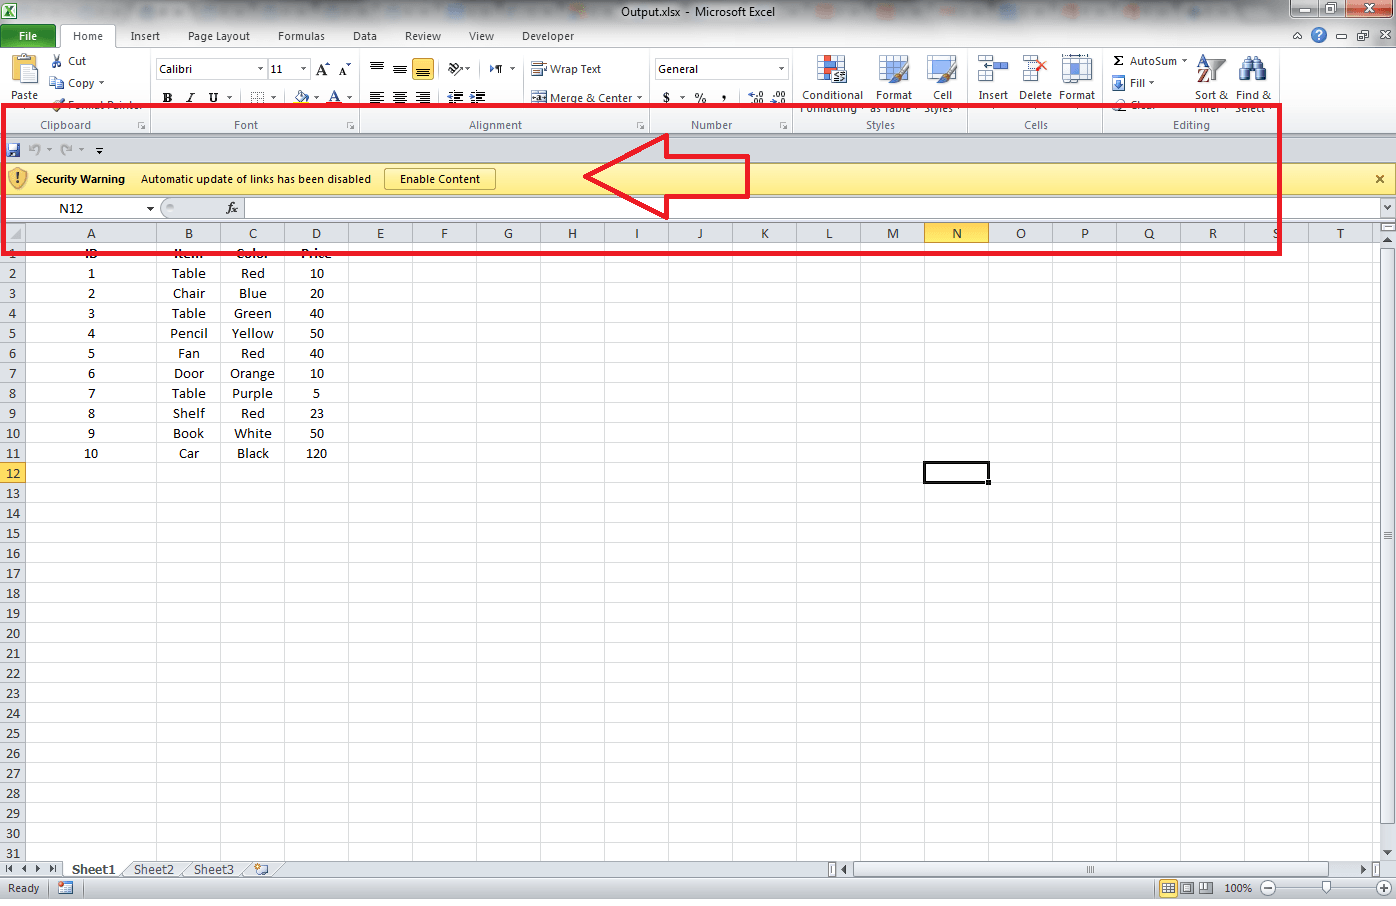 Workbooks how to pull data from another workbook in excel : Excel, Getting Data From Another Workbook Through Links - VBA and ...